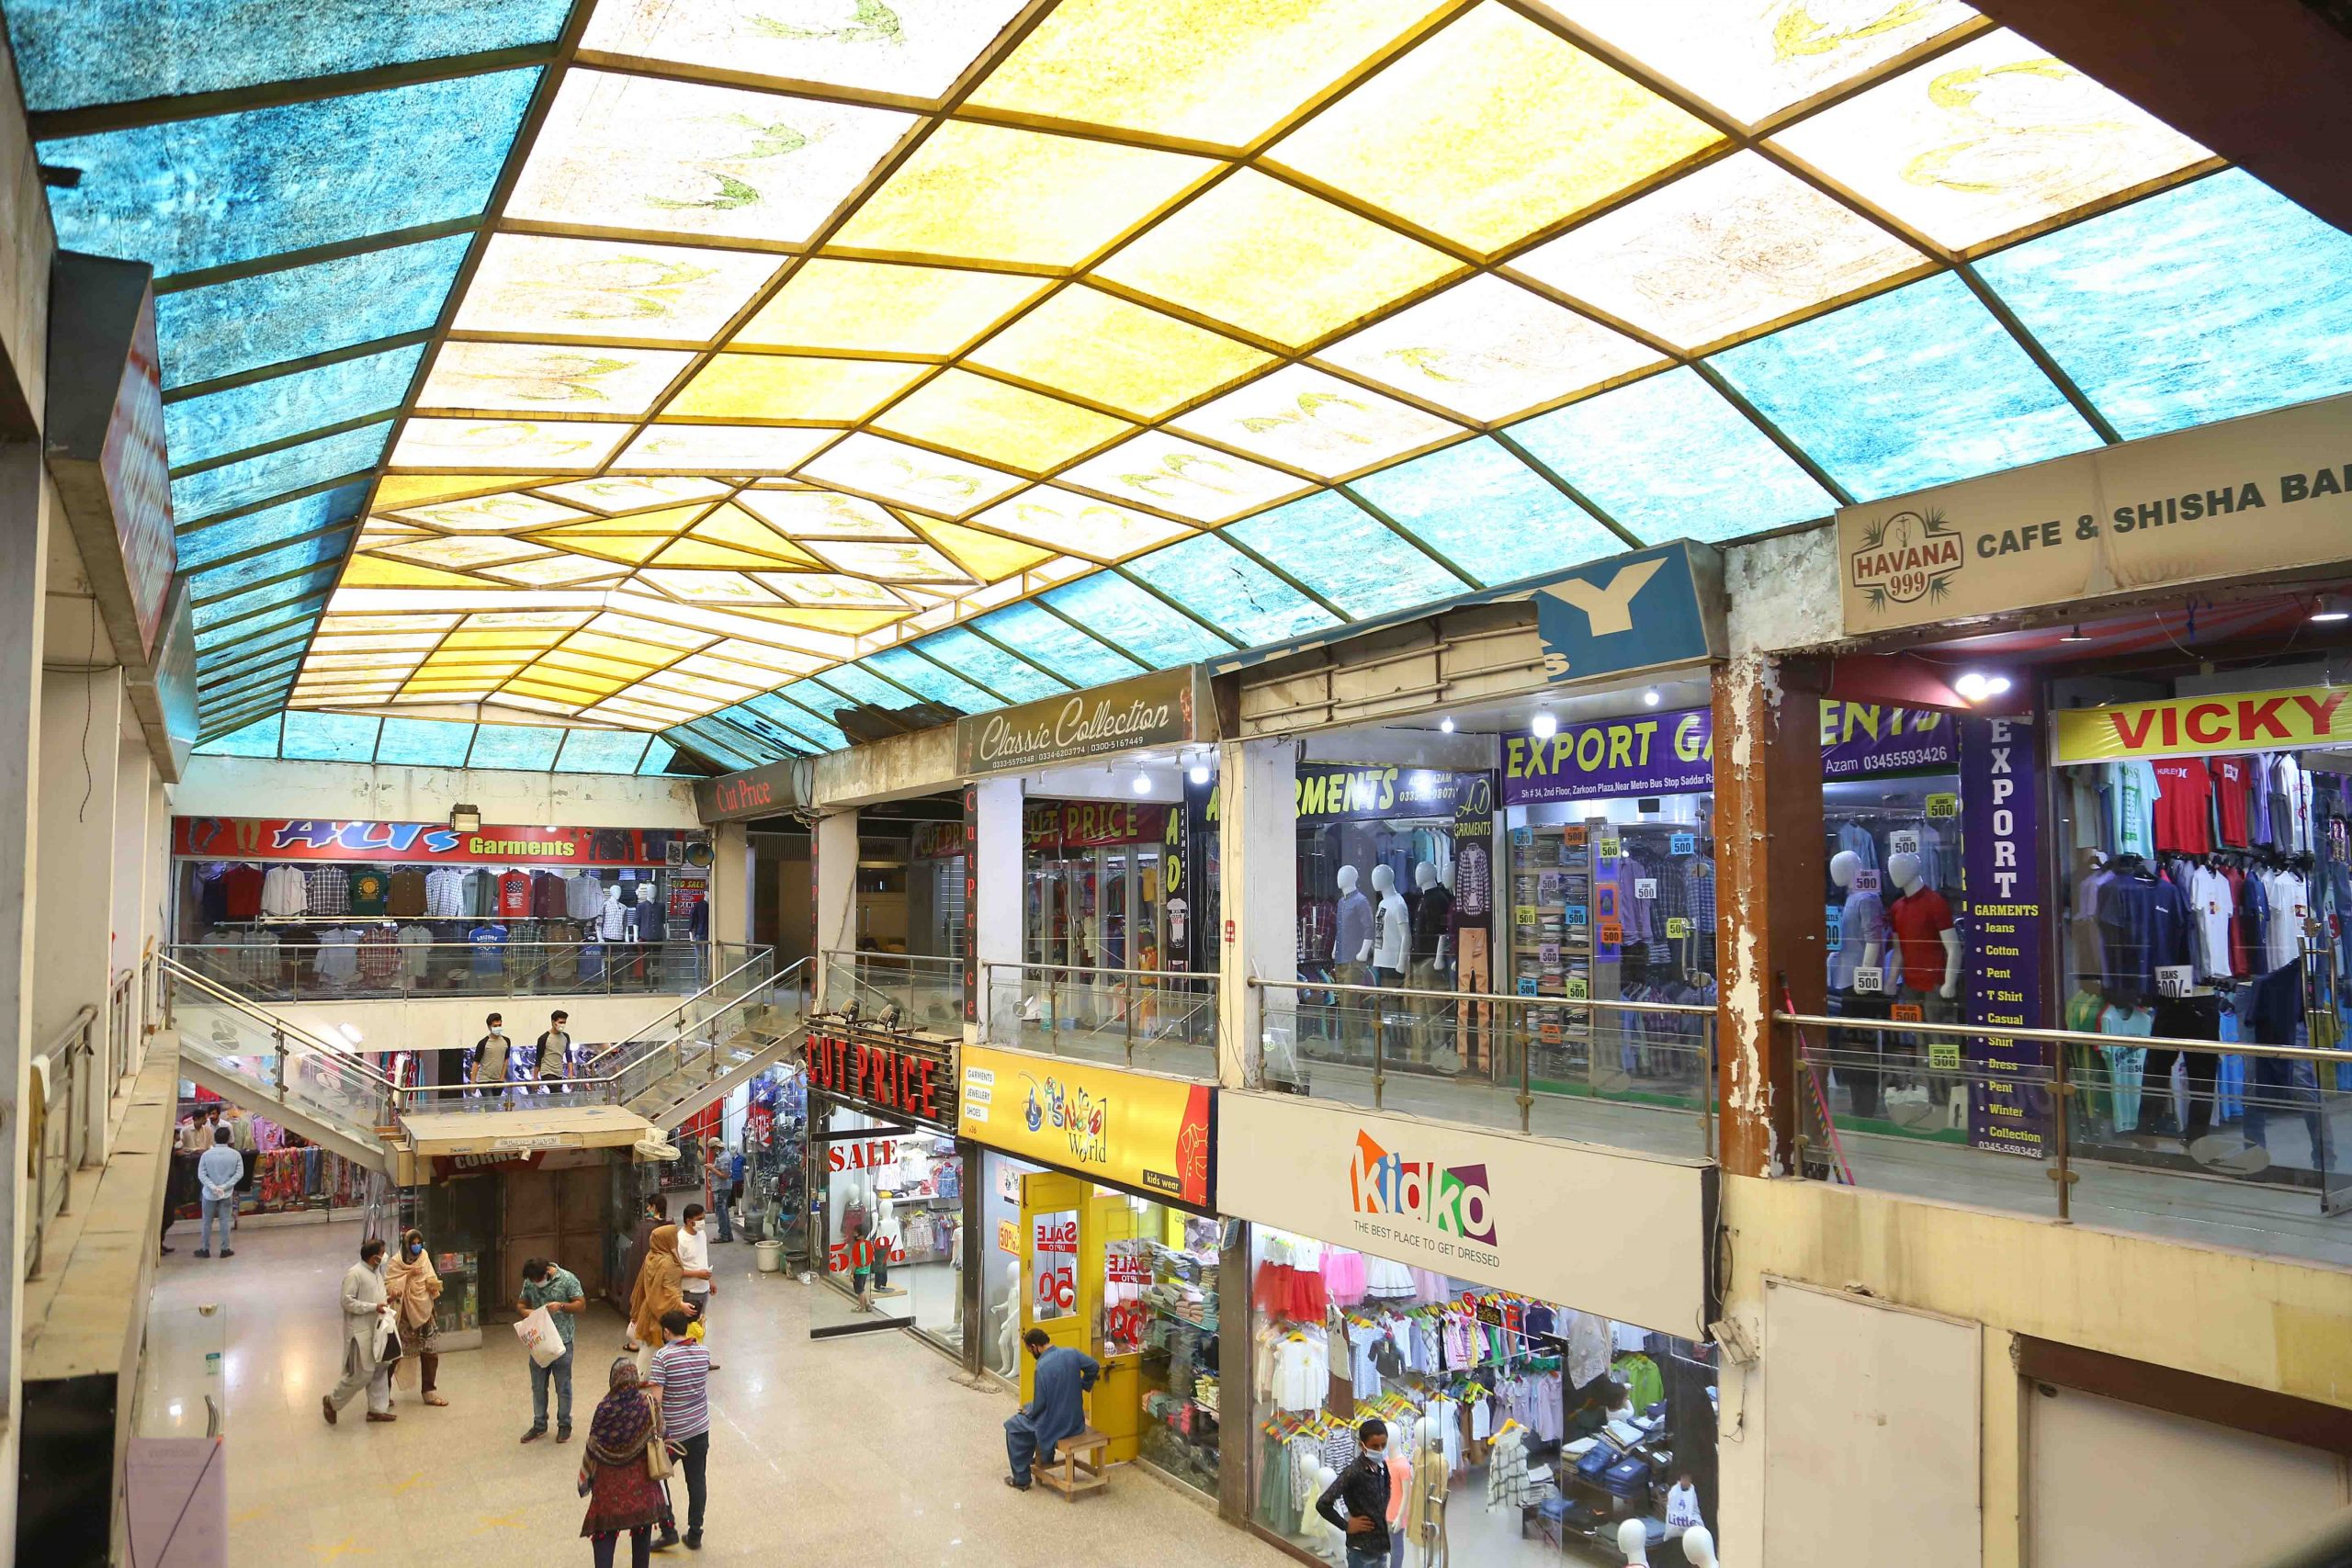 Zarkon Plaza 1 Saddar Rawalpindi Interior Views - FAH33M (7) - Q-L0-BO